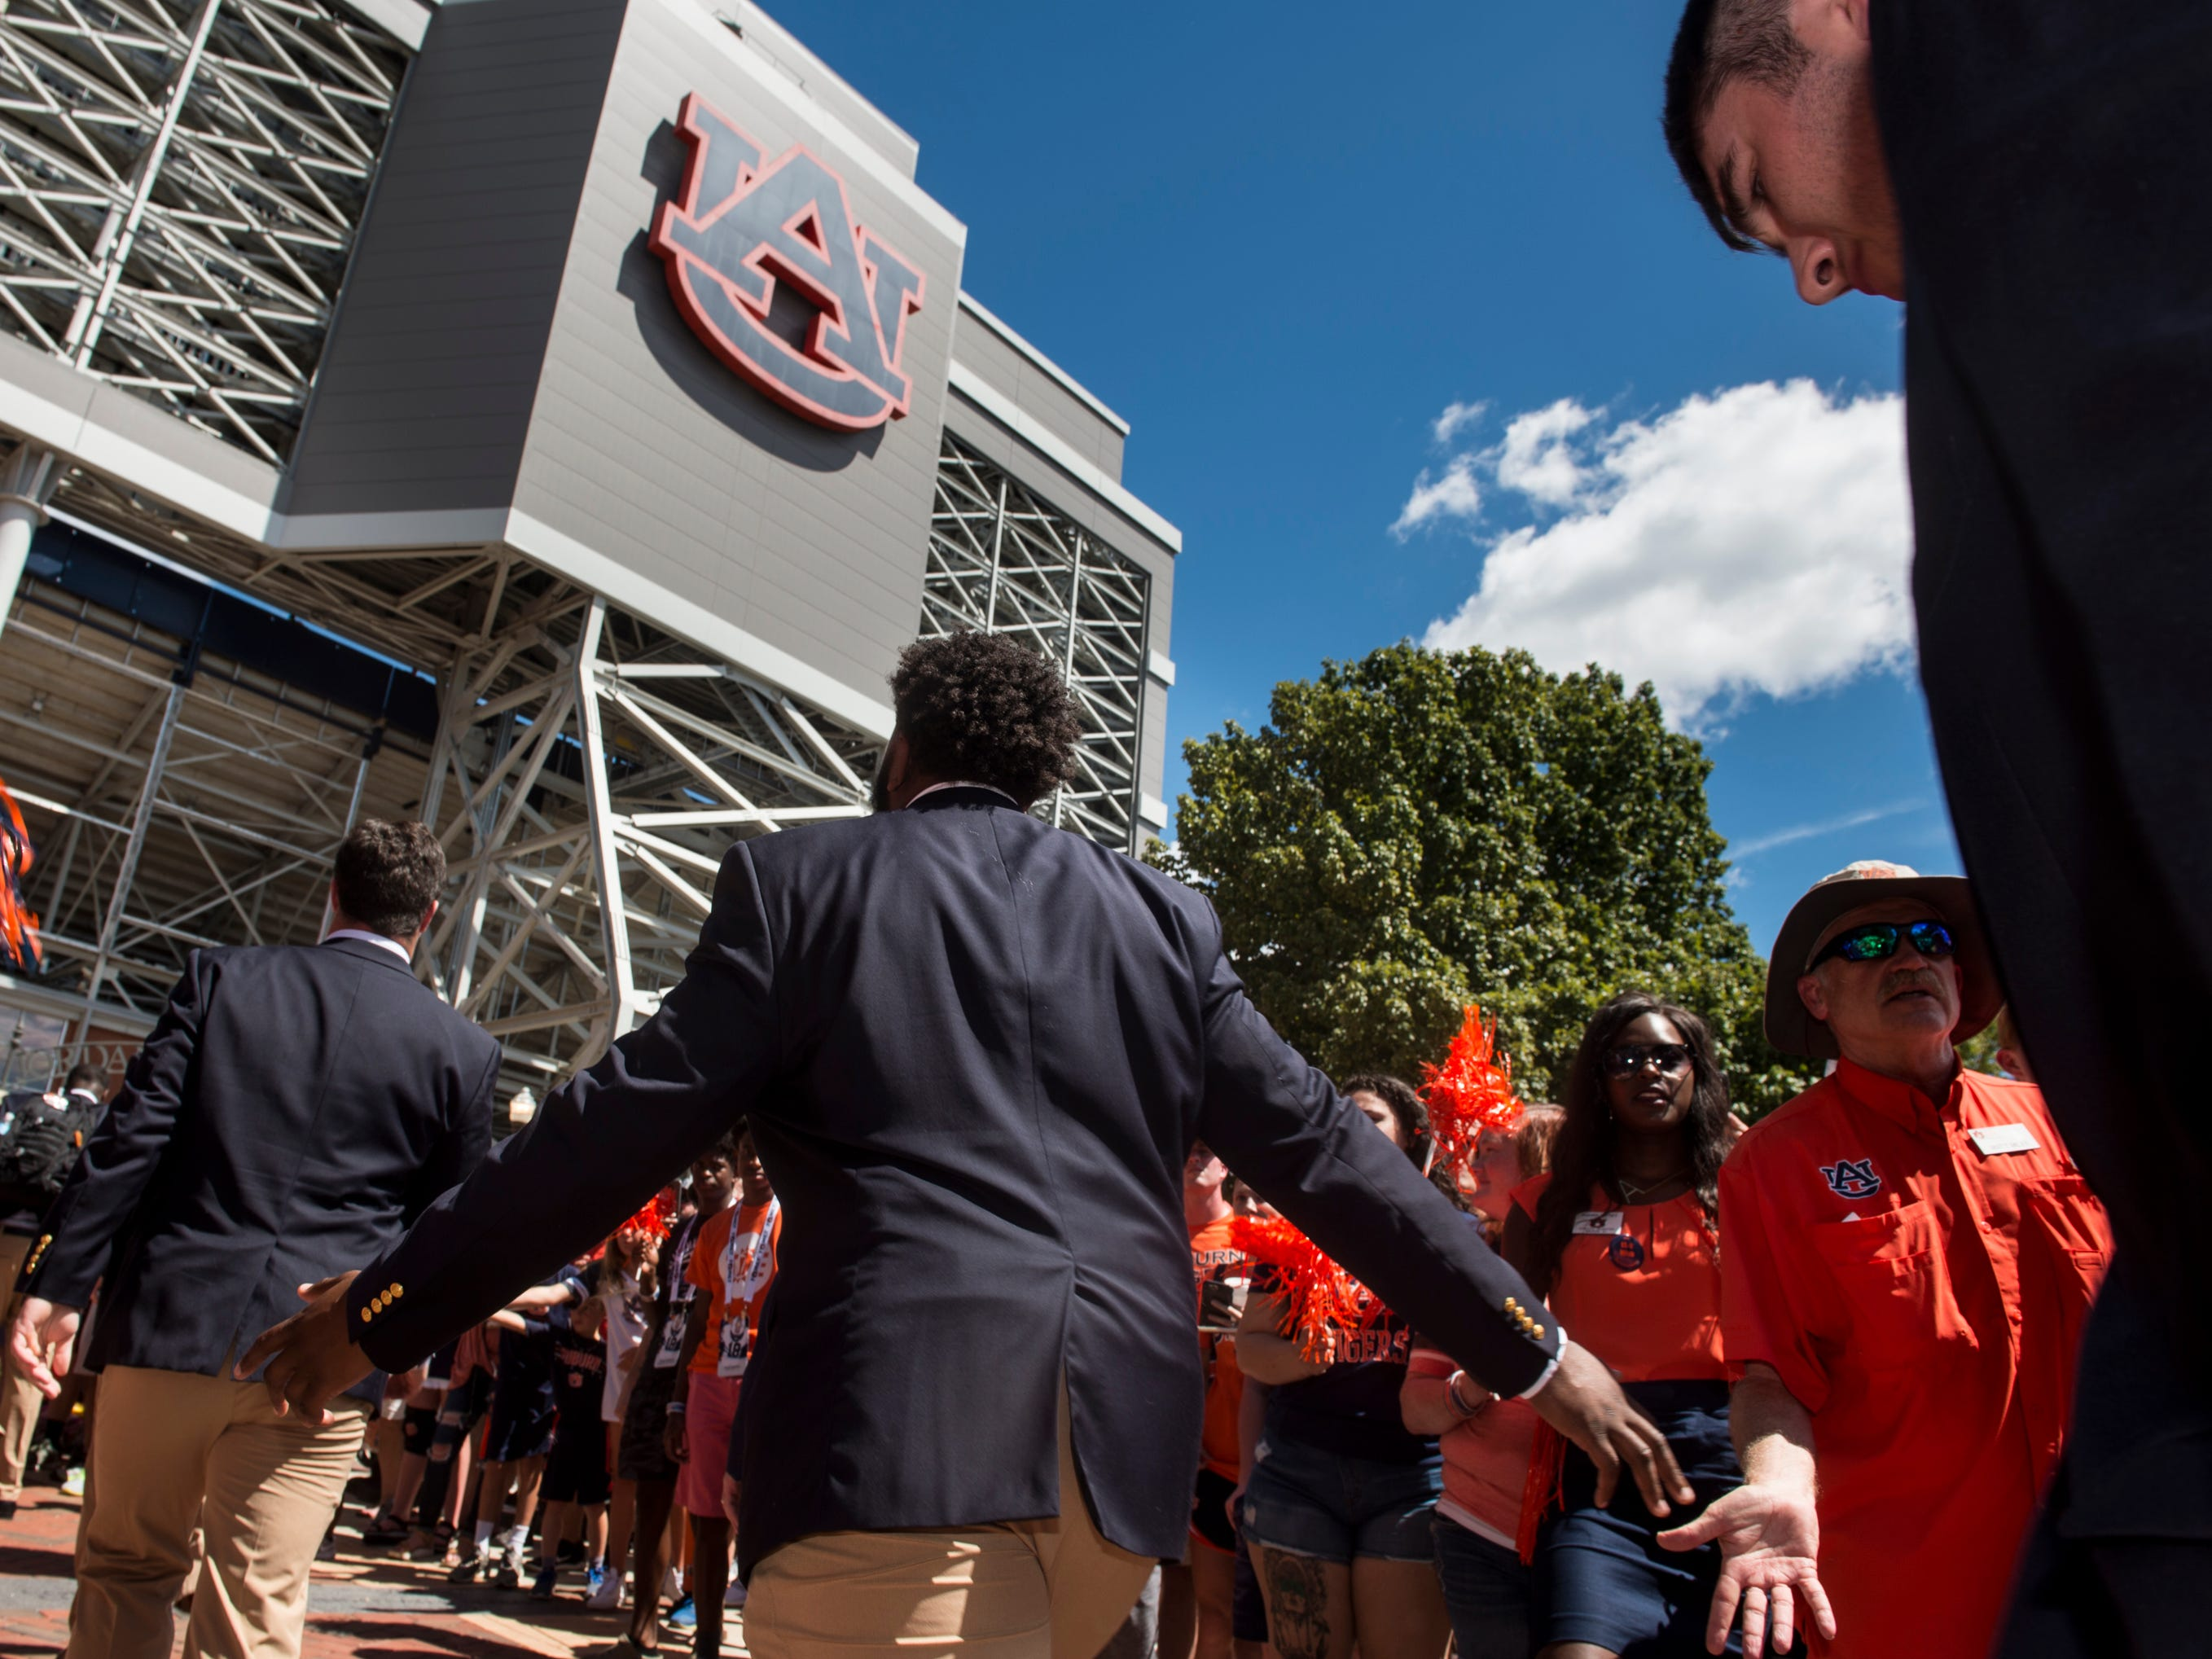 Players high five fans during the Tiger Walk outside Jordan-Hare Stadium in Auburn, Ala., on Saturday, Sept. 15, 2018.